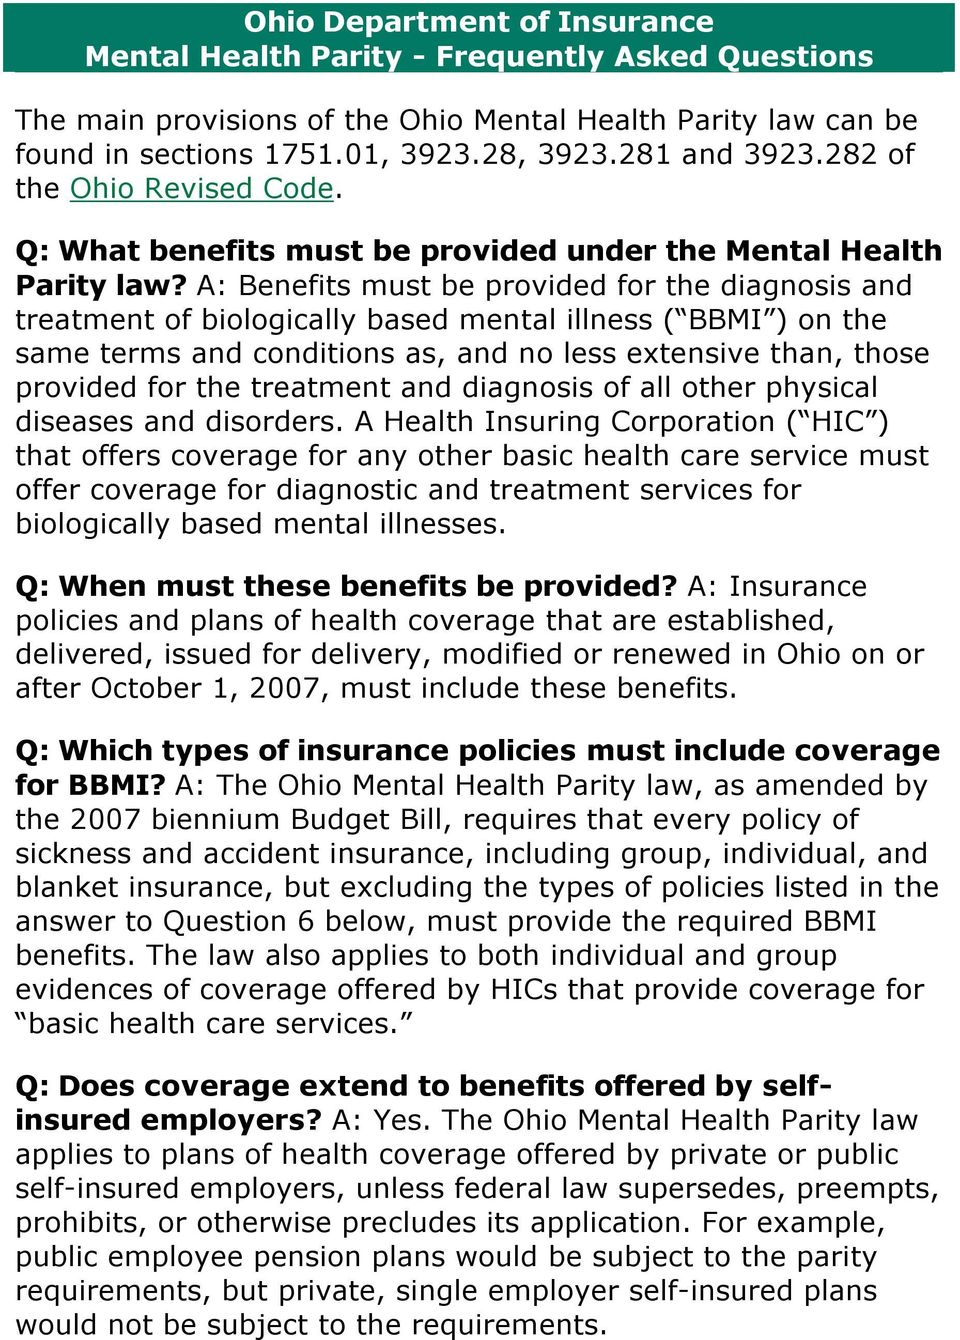 A: Benefits must be provided for the diagnosis and treatment of biologically based mental illness ( BBMI ) on the same terms and conditions as, and no less extensive than, those provided for the